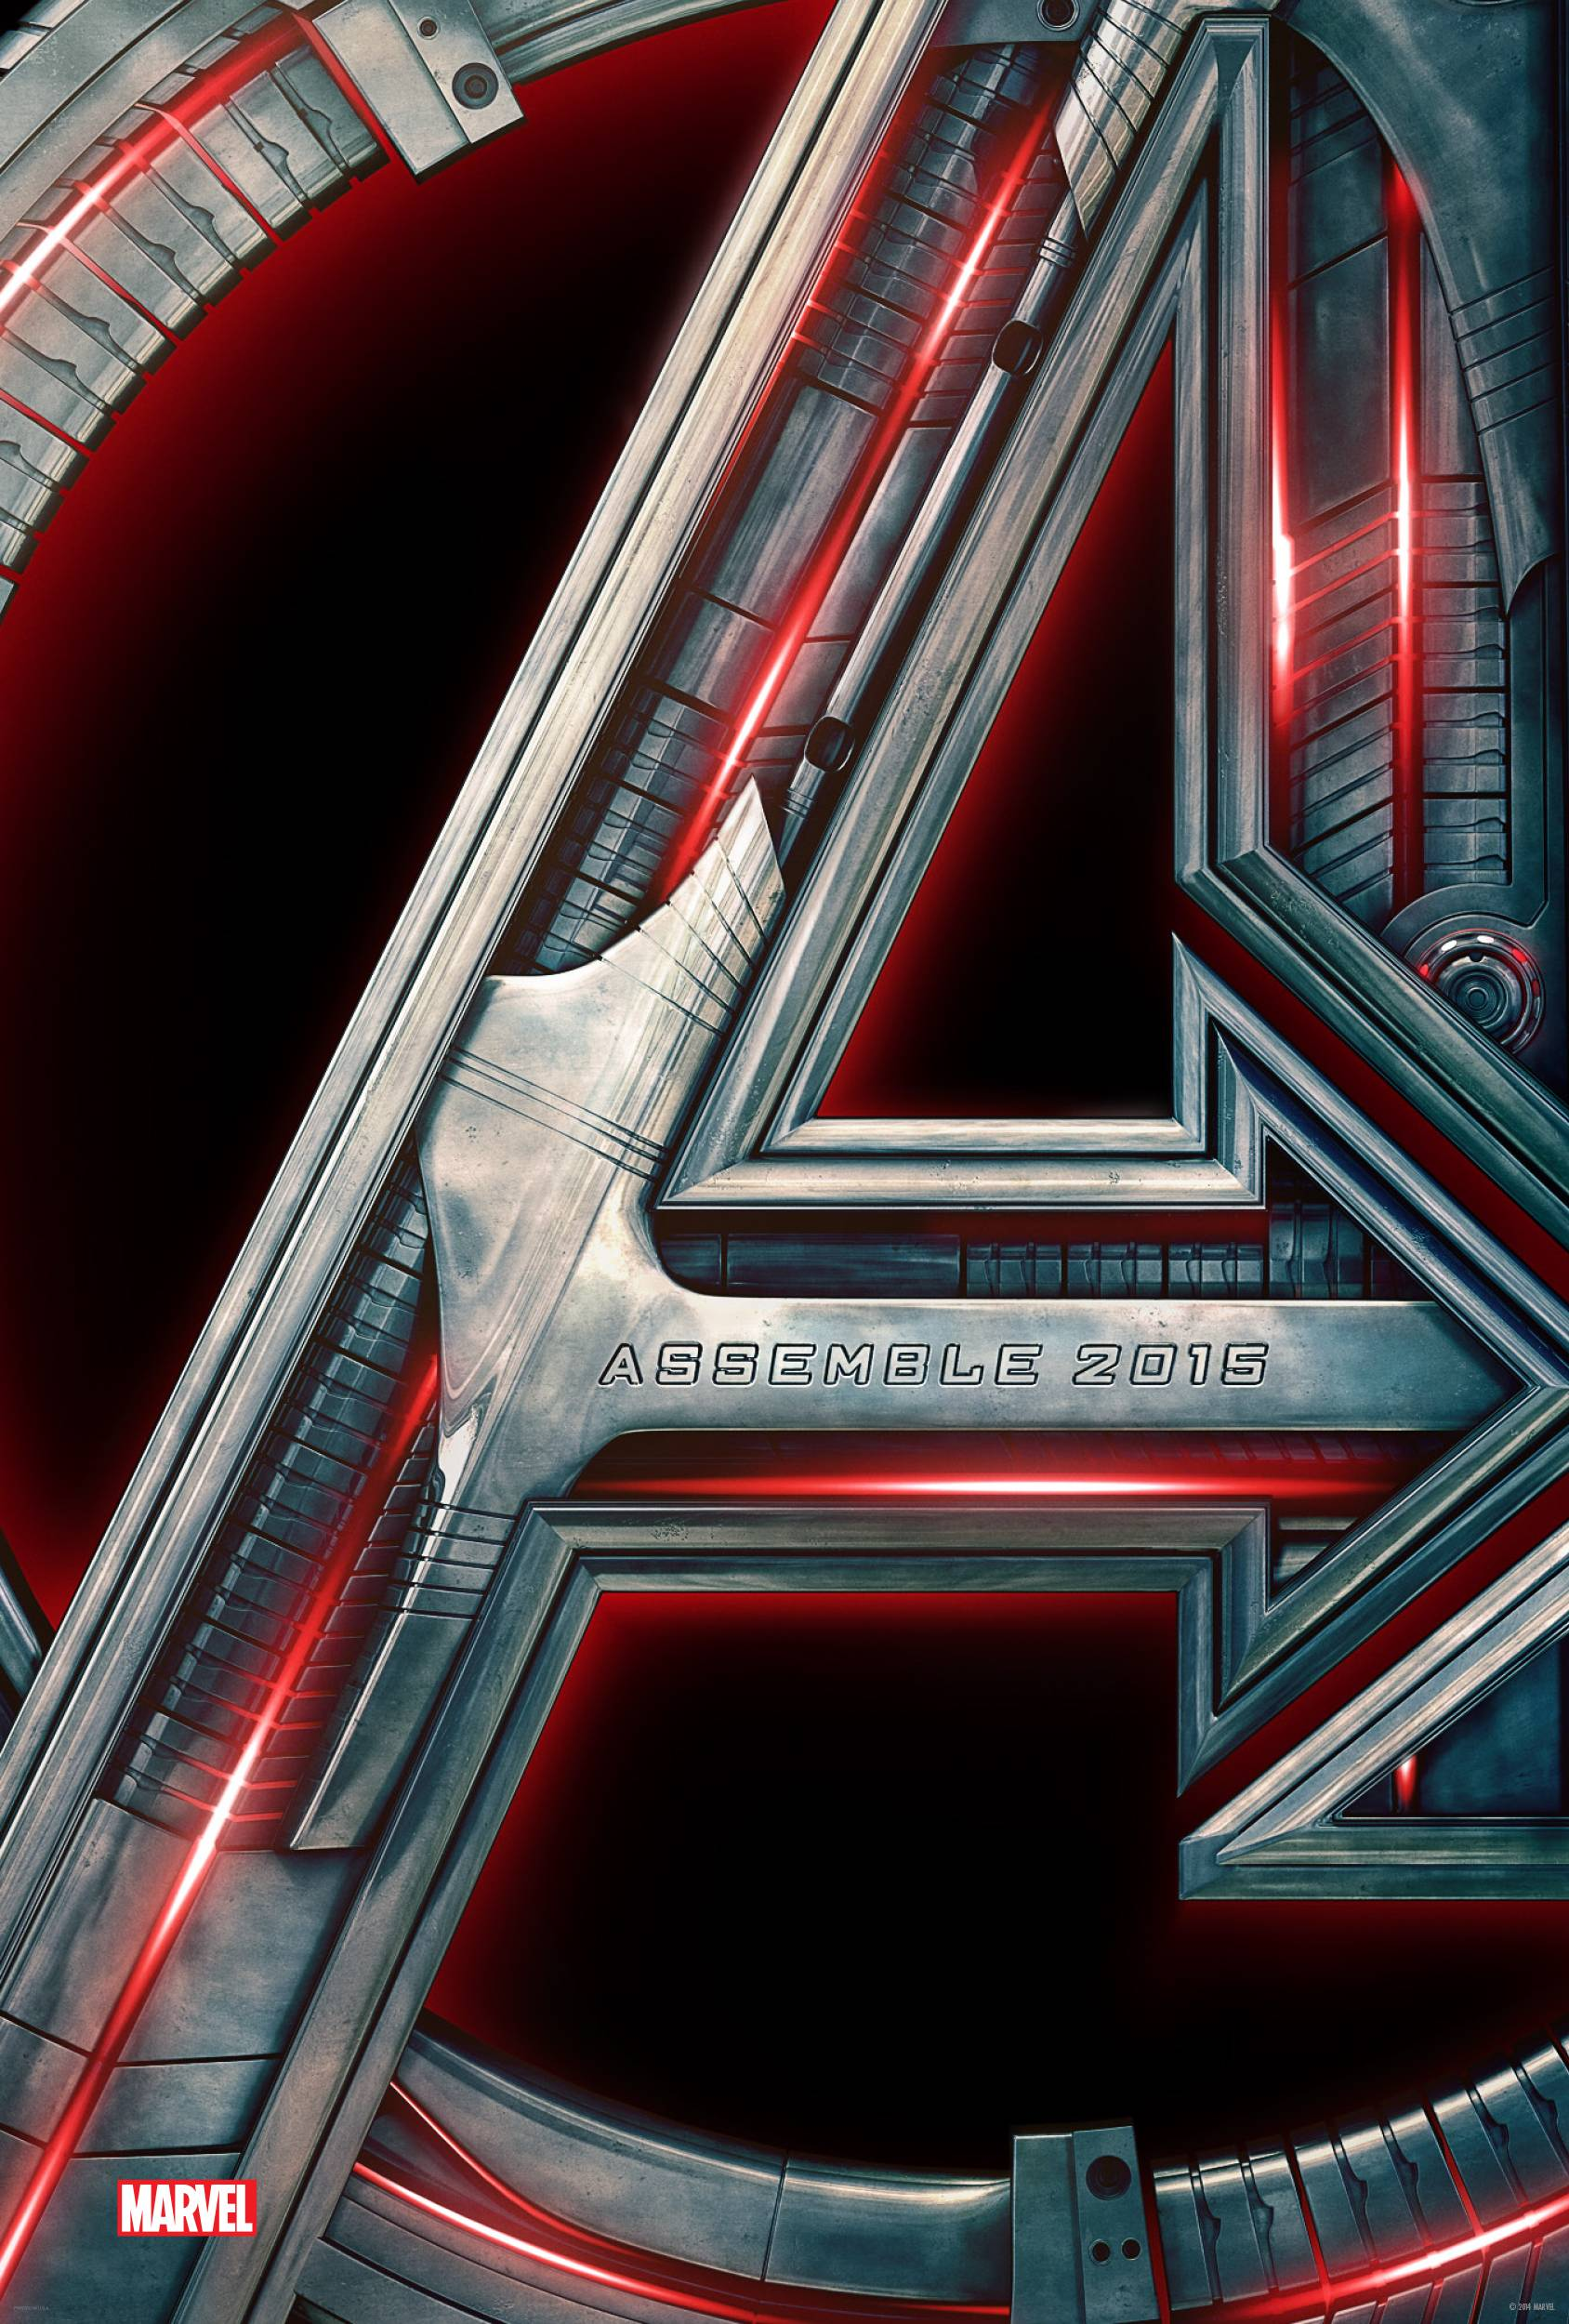 Avengers Age Of Ultron Logo Wallpaper Images